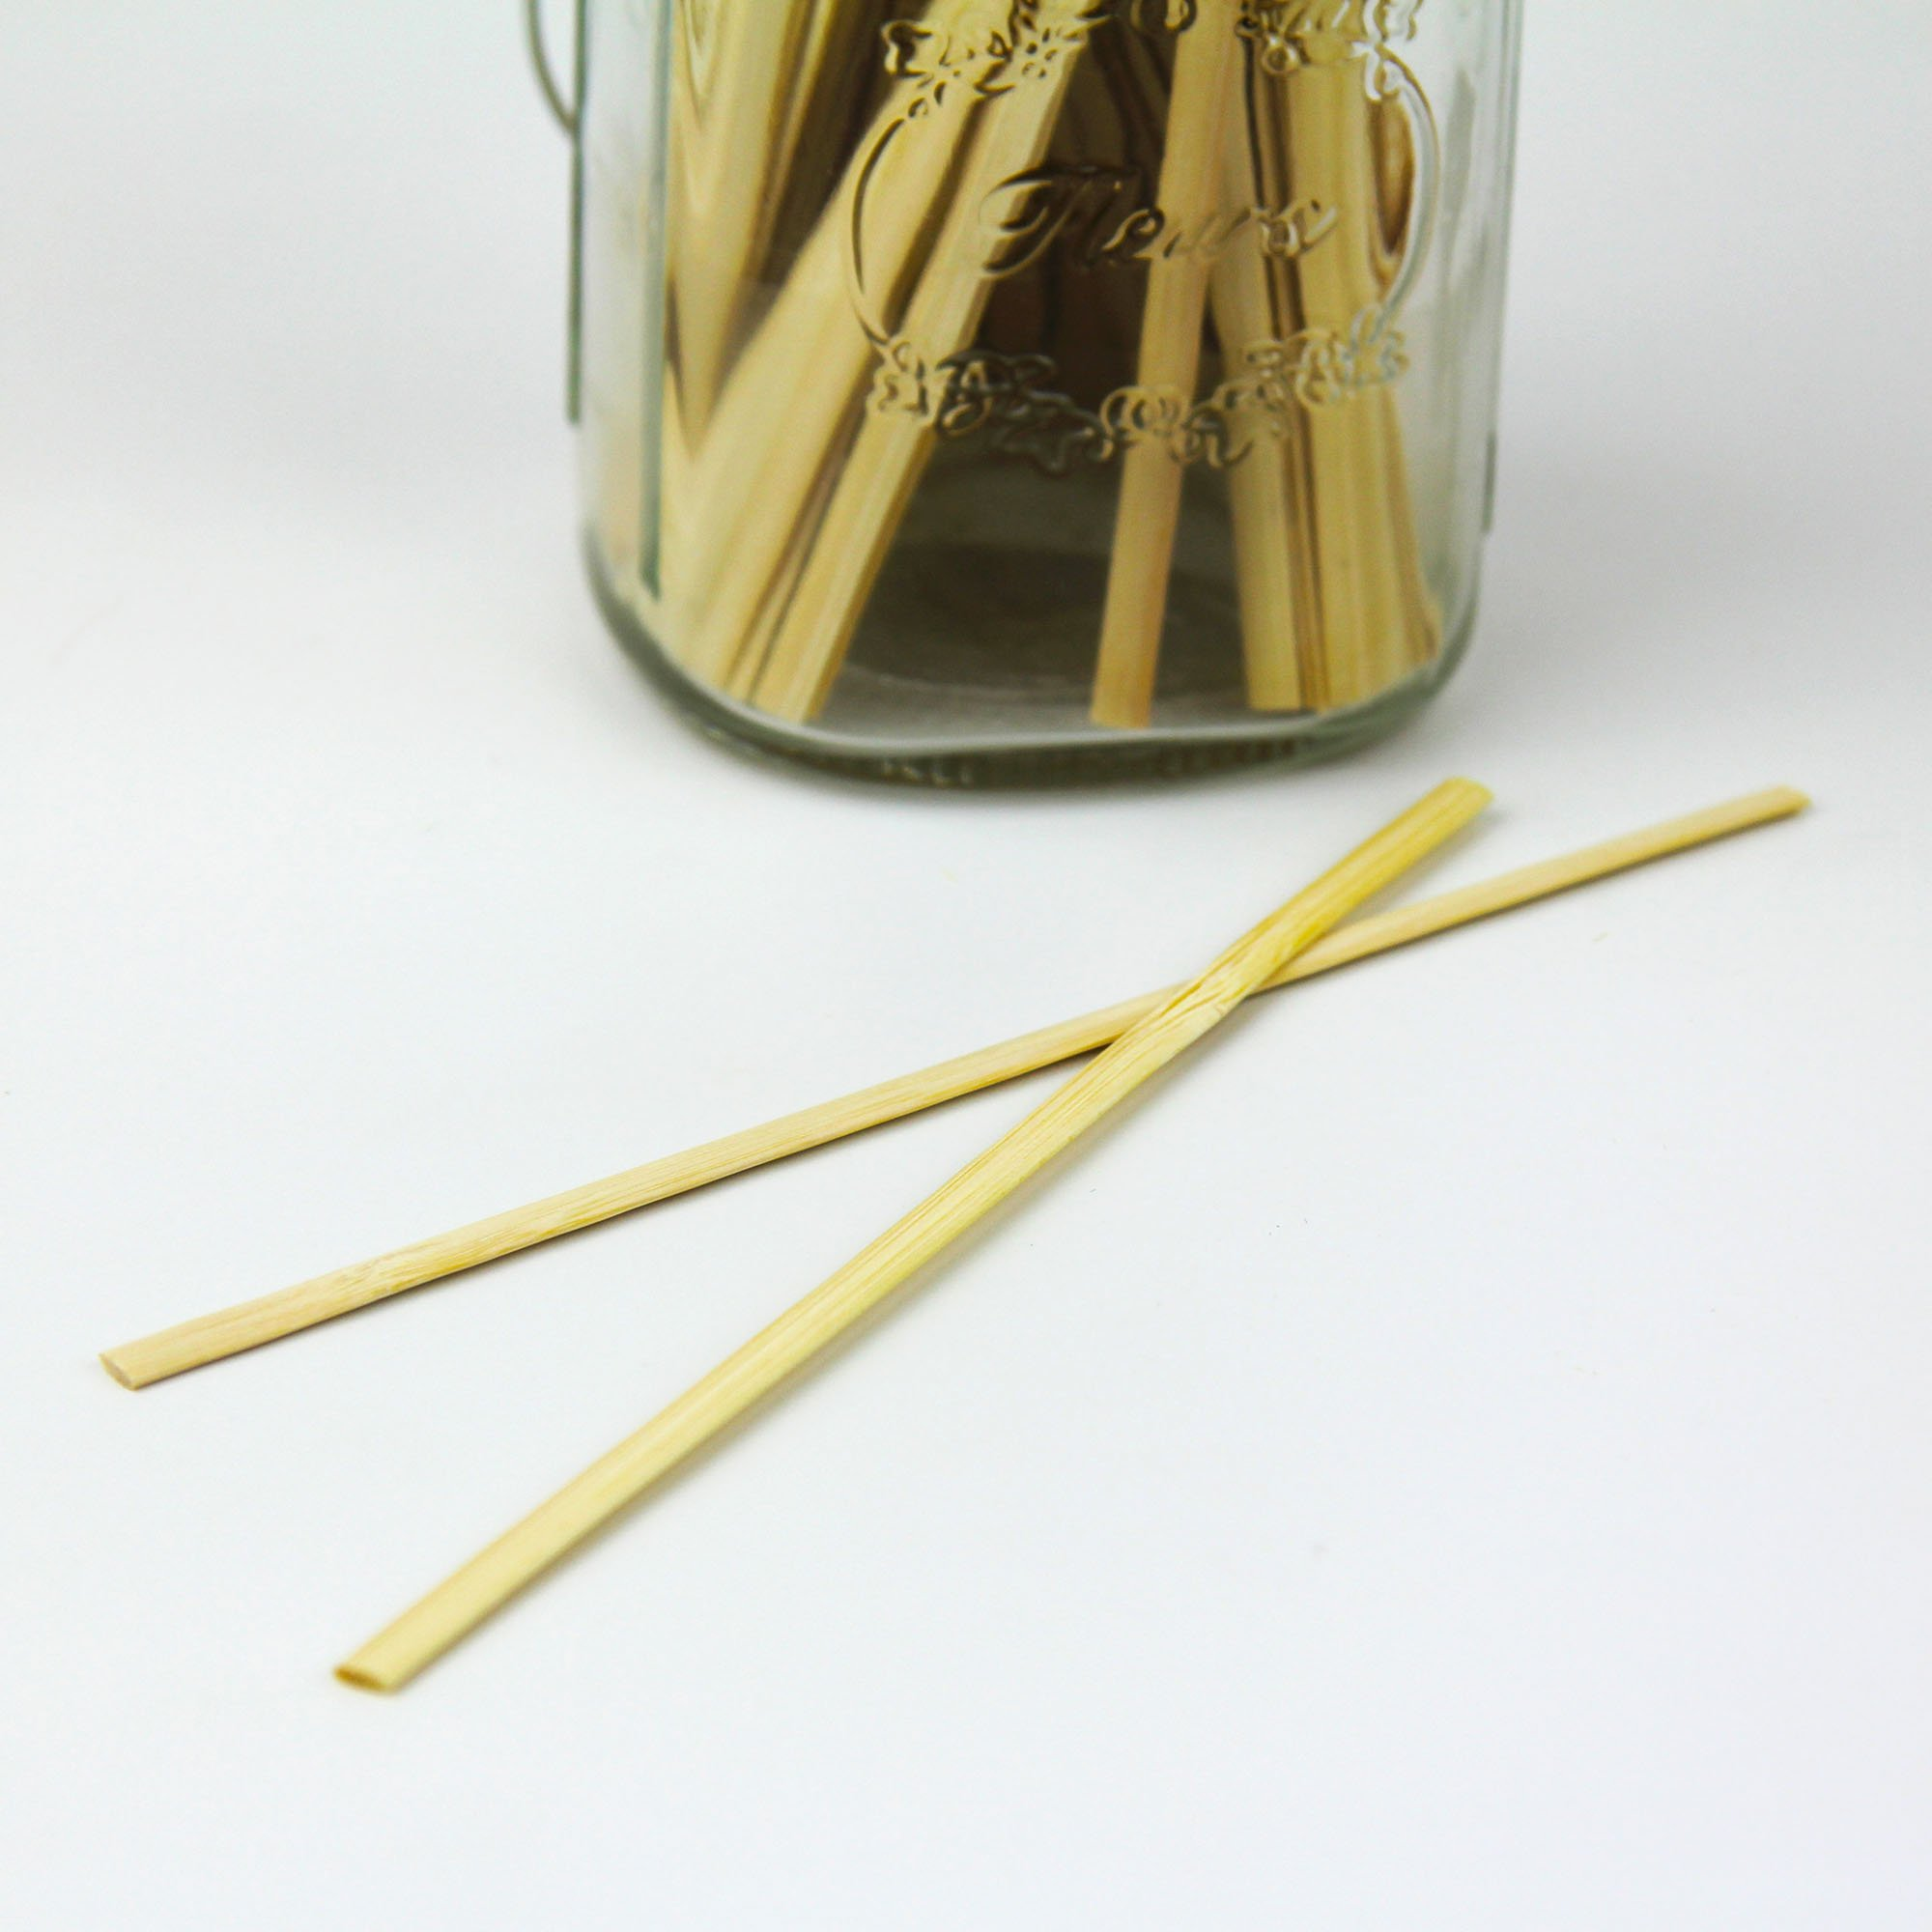 7'' Bamboo Wood Coffee Stir Sticks, Disposable Wooden Tea Drink Cocktail Mix Stirrers, Compostable Eco Friendly For Hot Cold Beverages - 1000 Pack by Fit Meal Prep (Image #4)